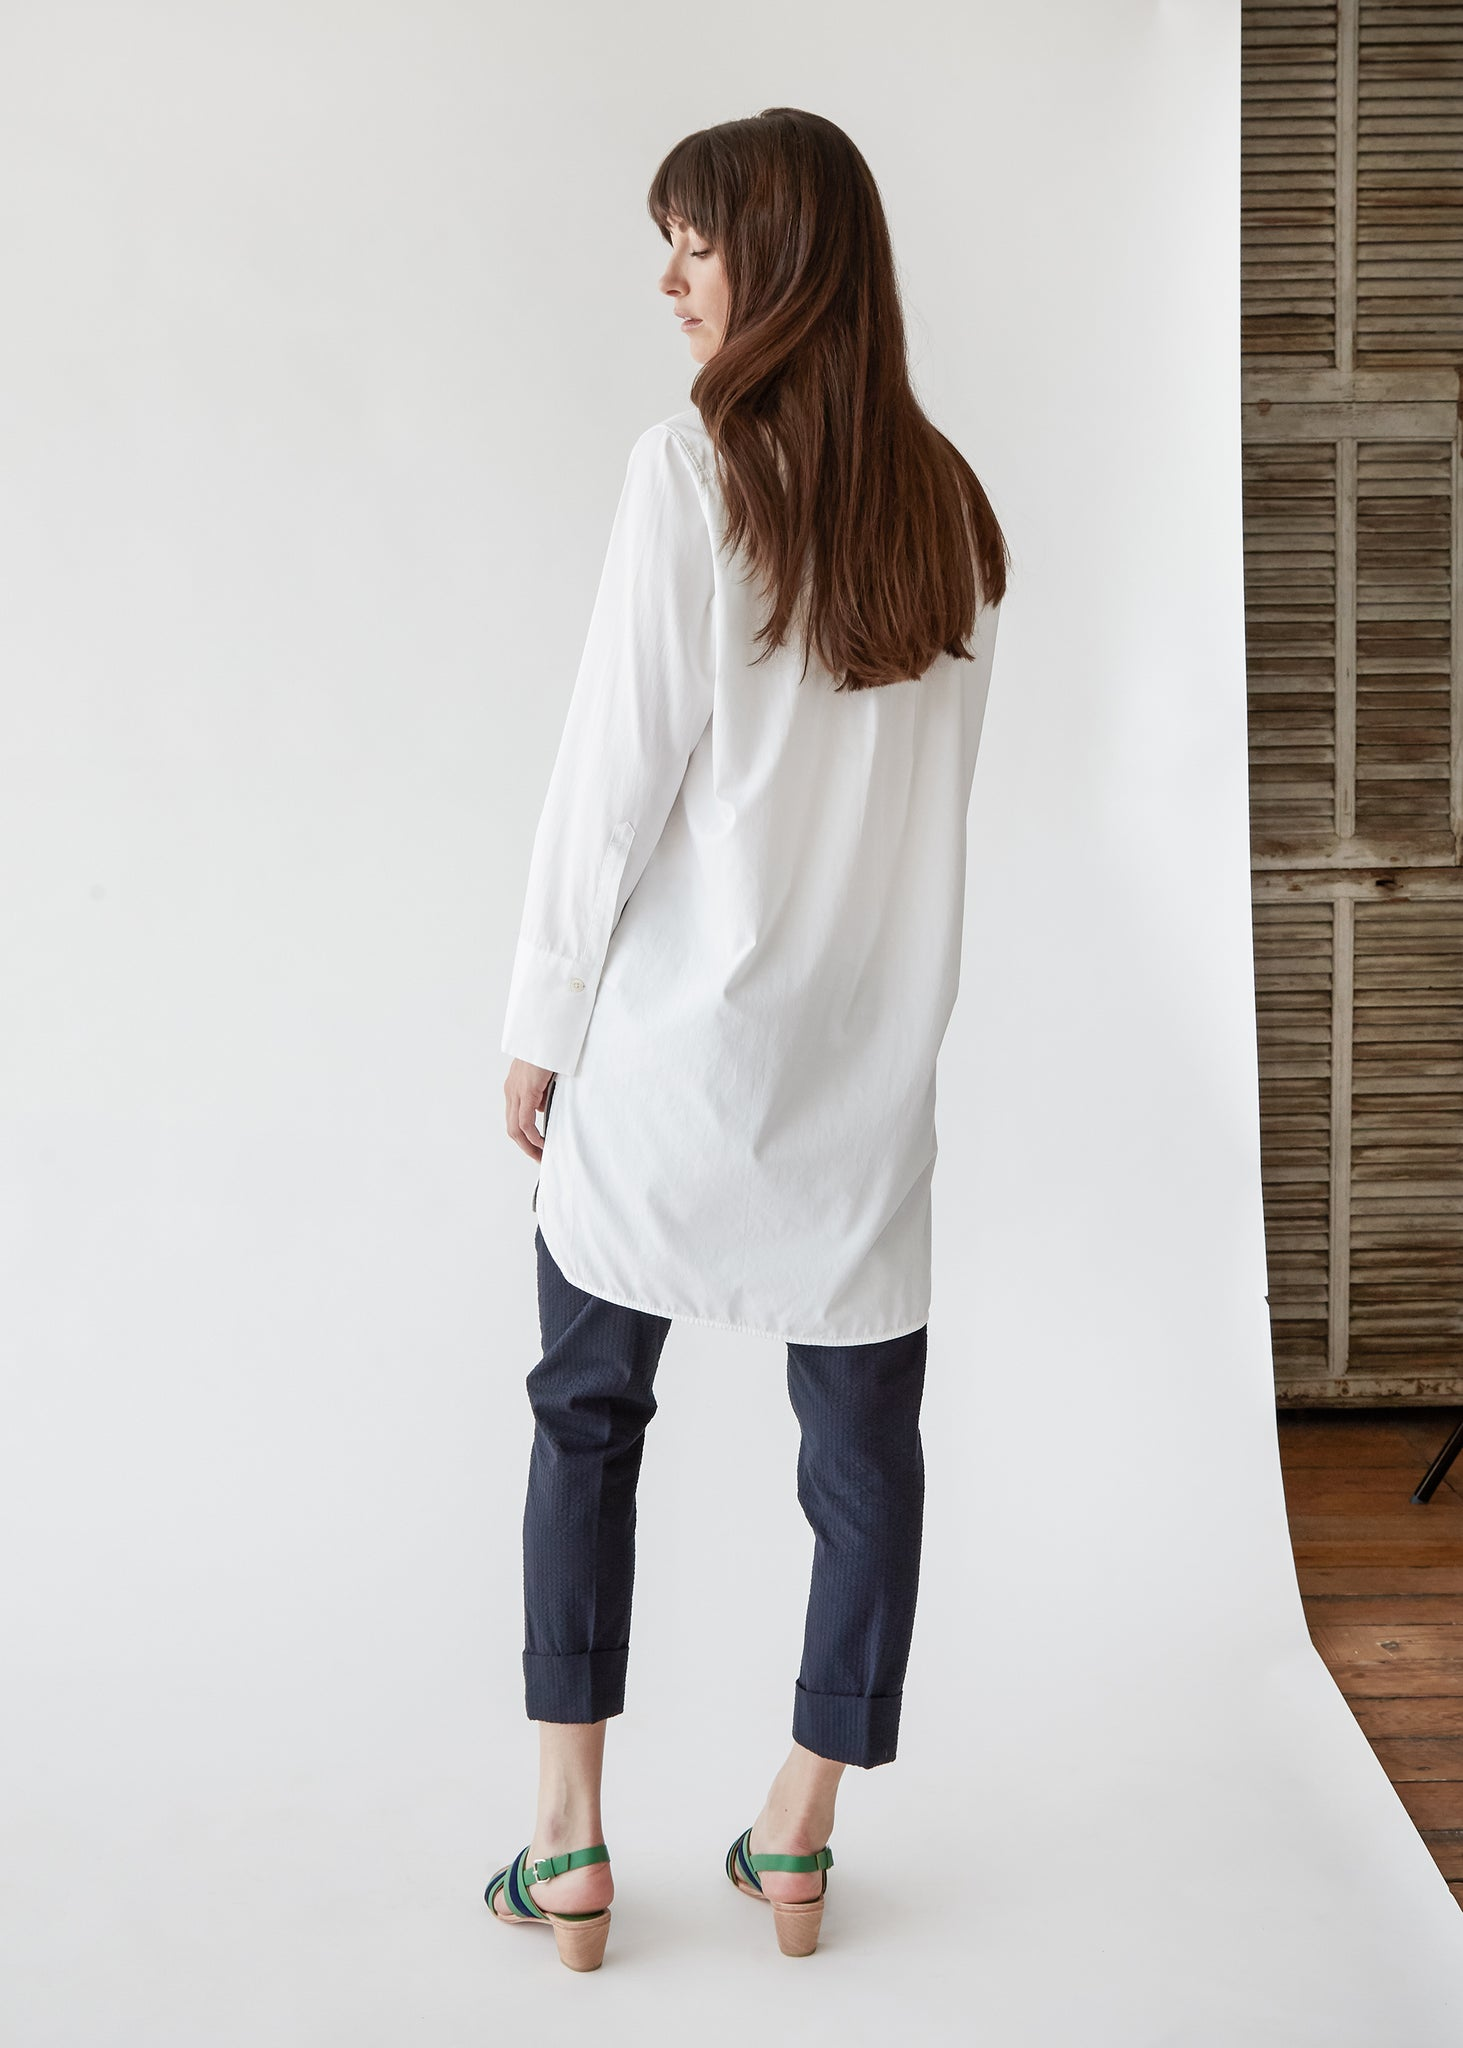 Dusk Shirt in White - SOLD OUT